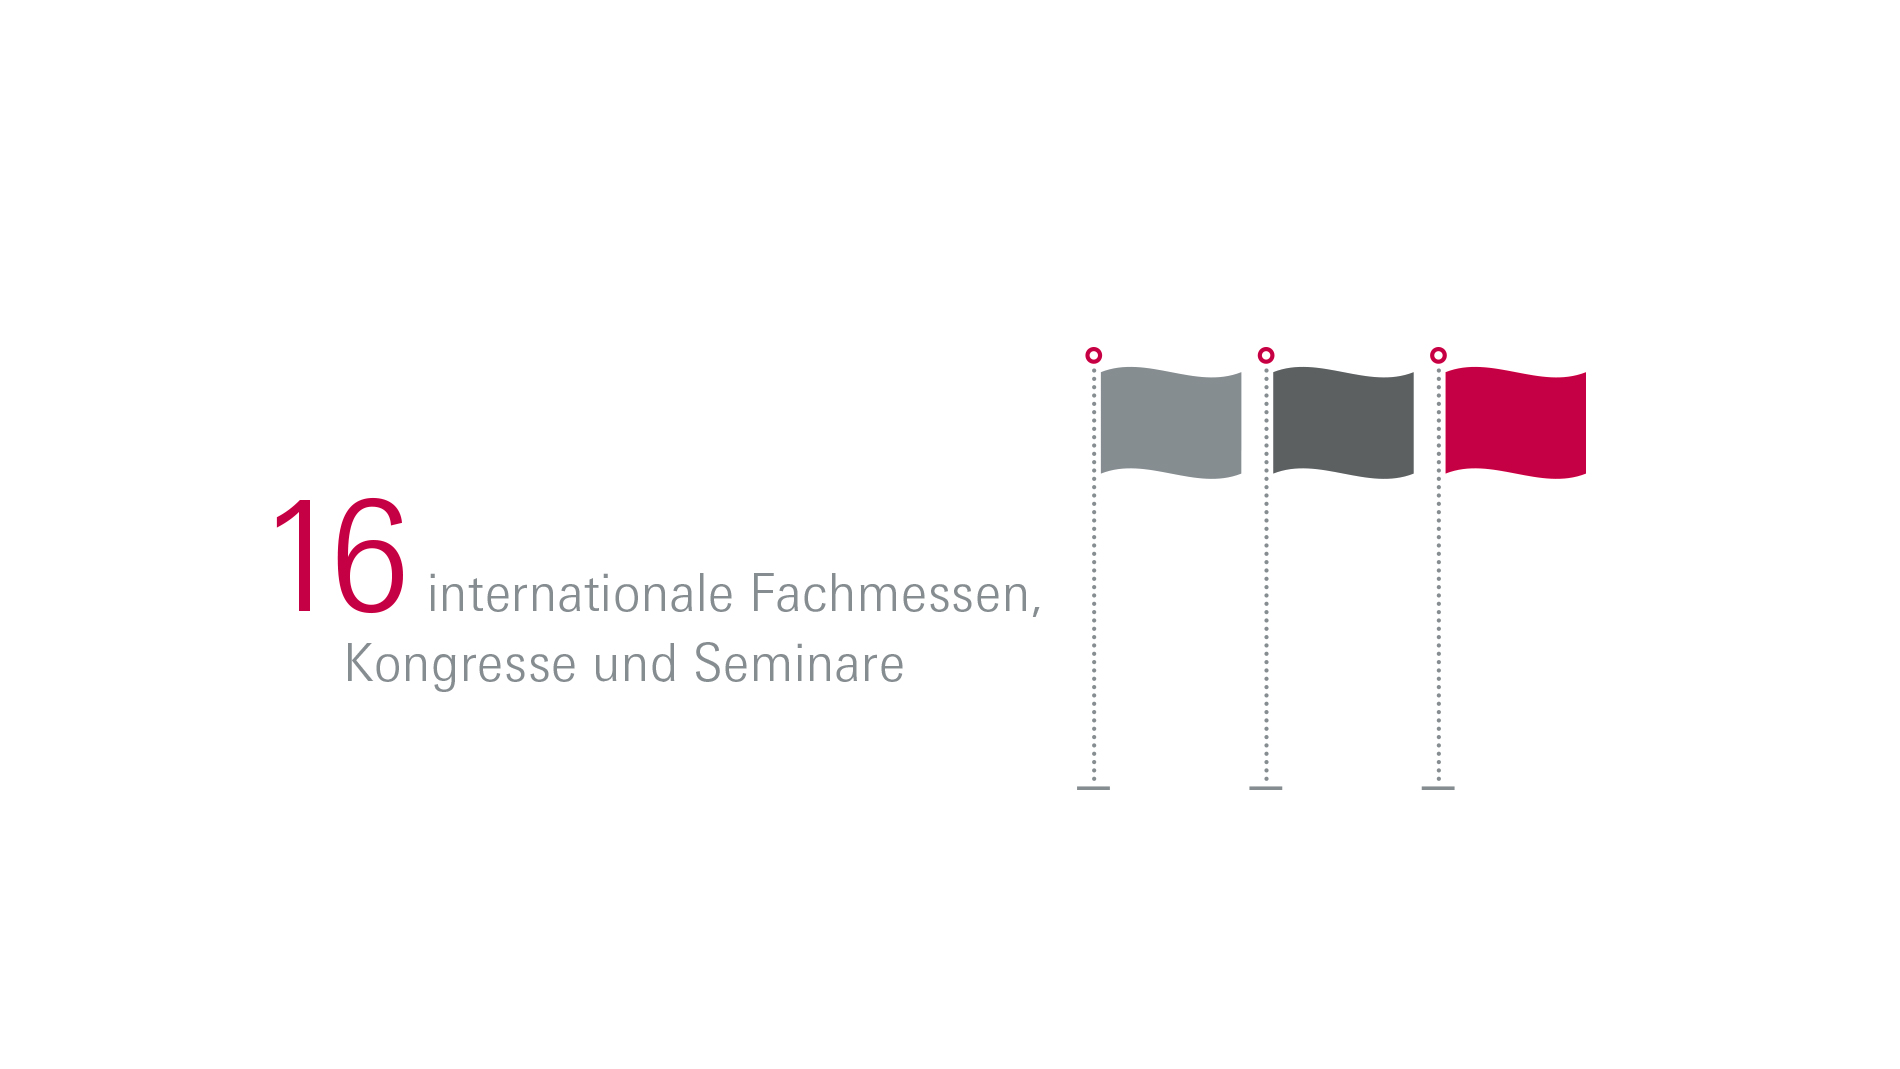 16 internationale Fachmessen, Kongresse und Seminare